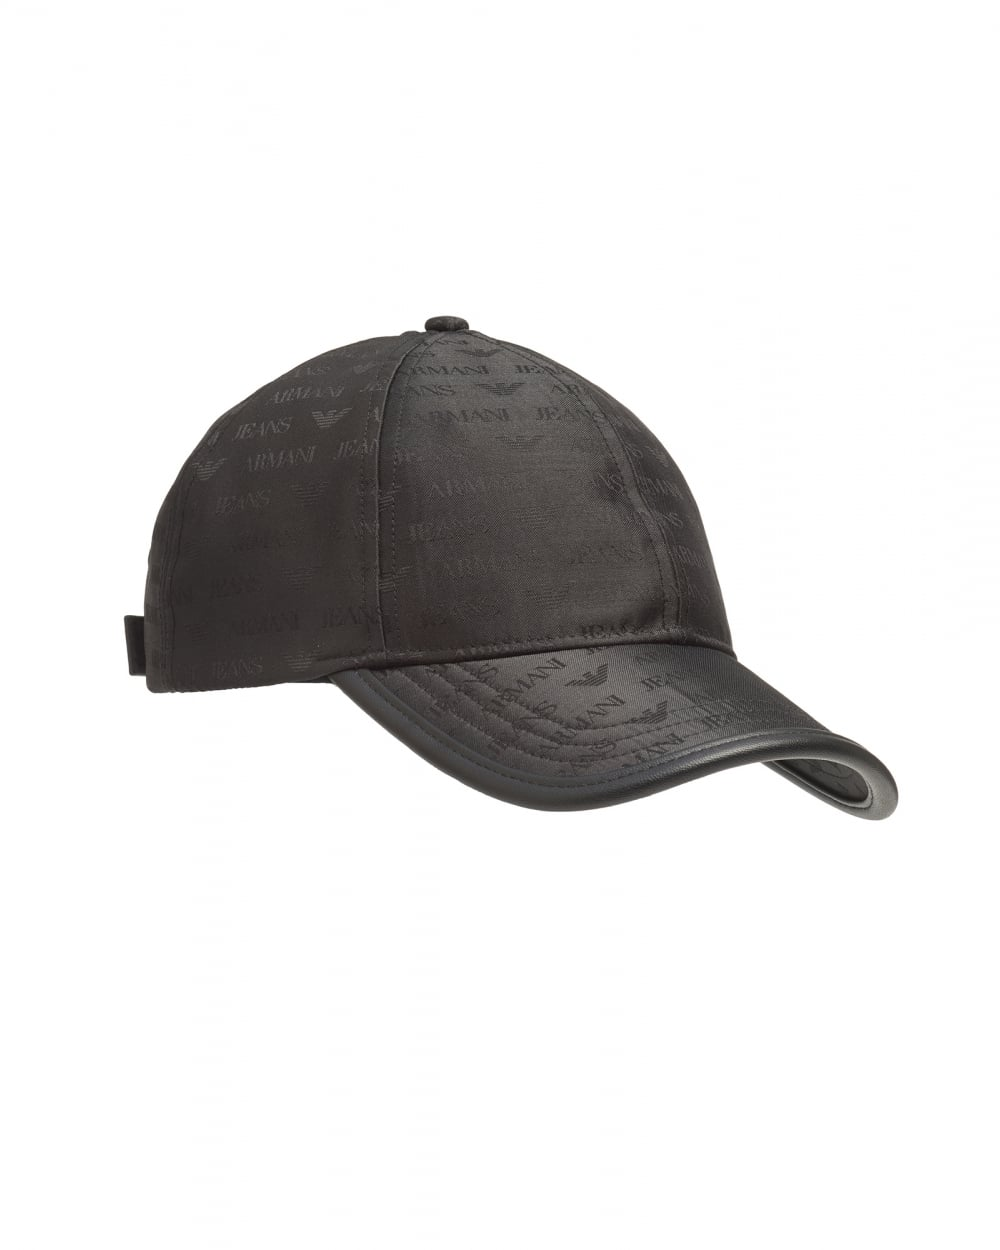 7a3aa9292be Armani Jeans Mens All Over Logo Black Adjustable Baseball Cap